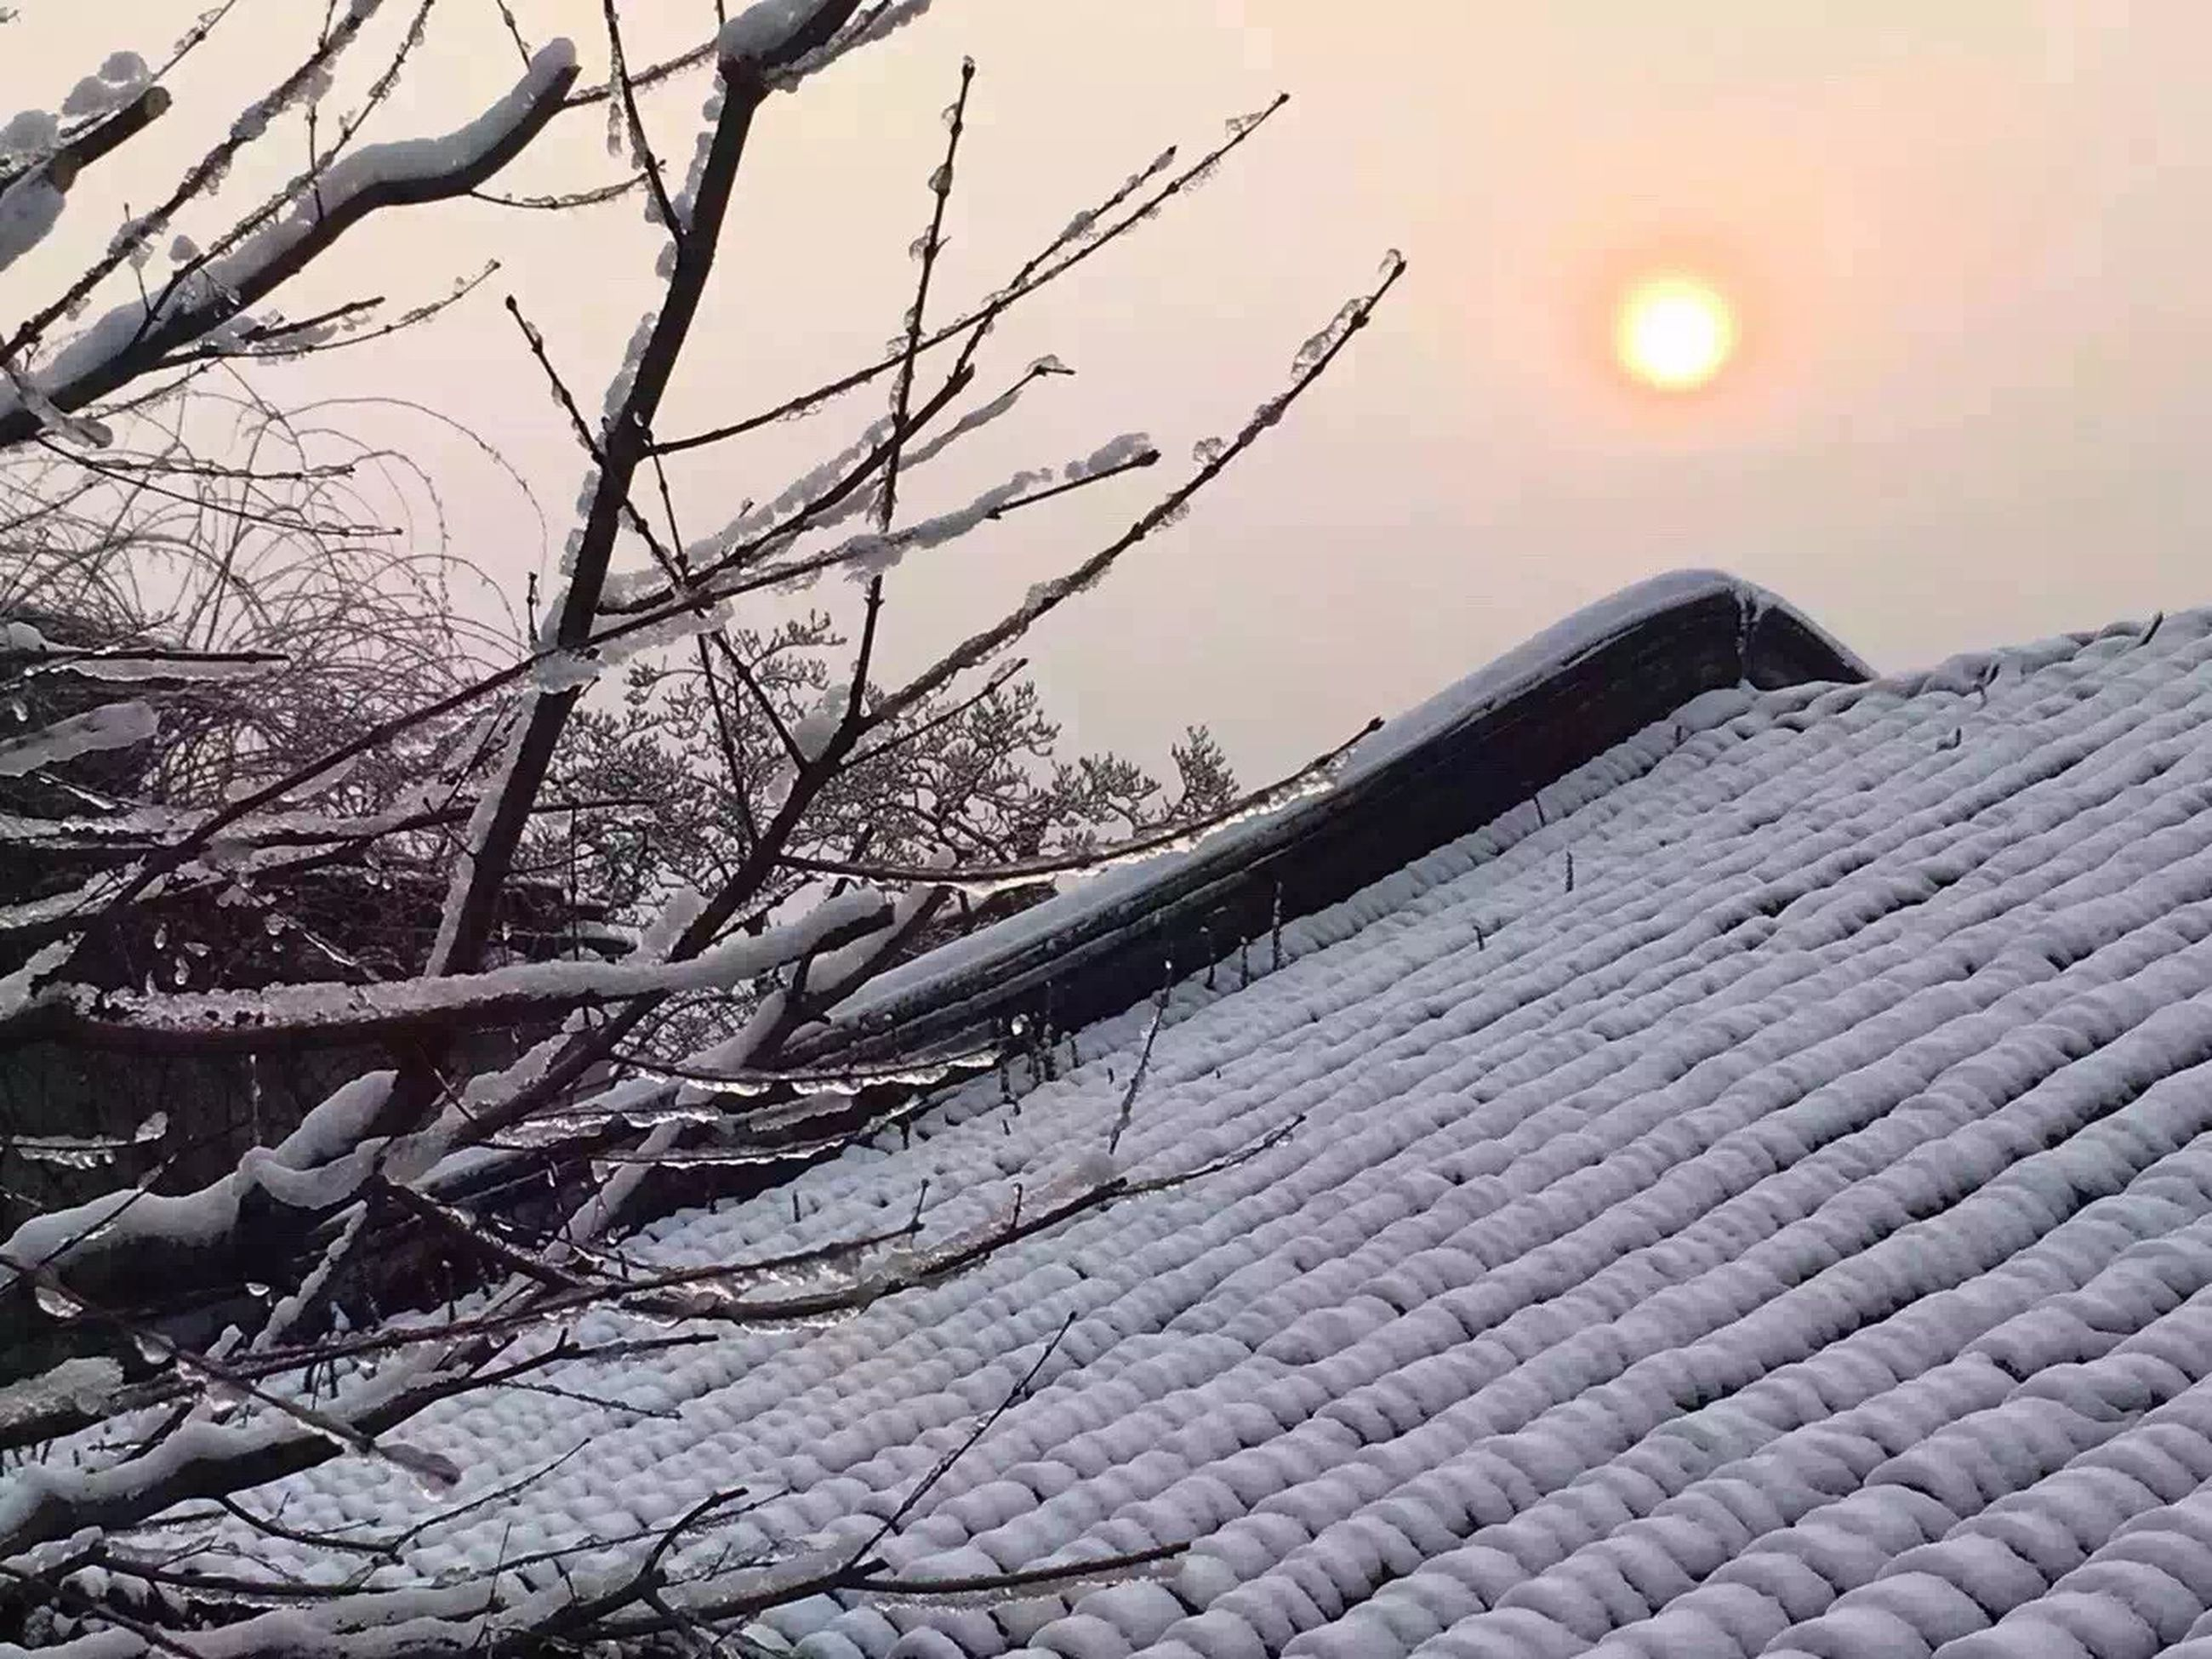 sunset, bare tree, branch, sky, sun, nature, winter, tranquility, tree, scenics, orange color, beauty in nature, tranquil scene, snow, season, built structure, sunlight, cold temperature, outdoors, no people